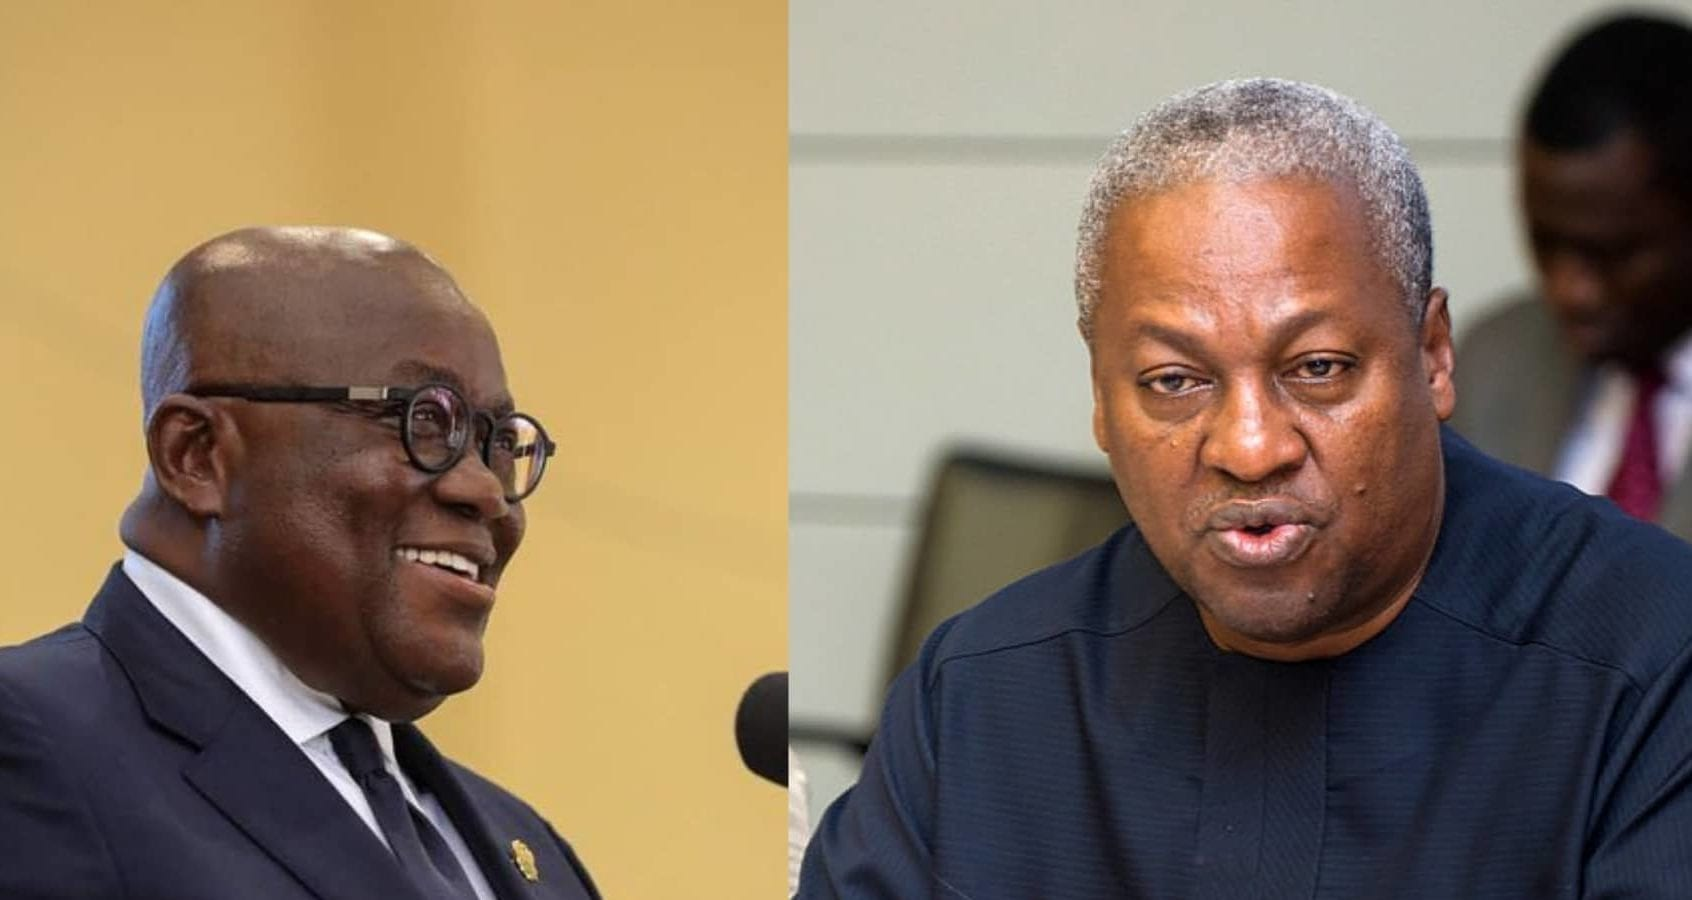 Mahama has not called Prez Akufo-Addo to concede defeat following Supreme Court's ruling yesterday